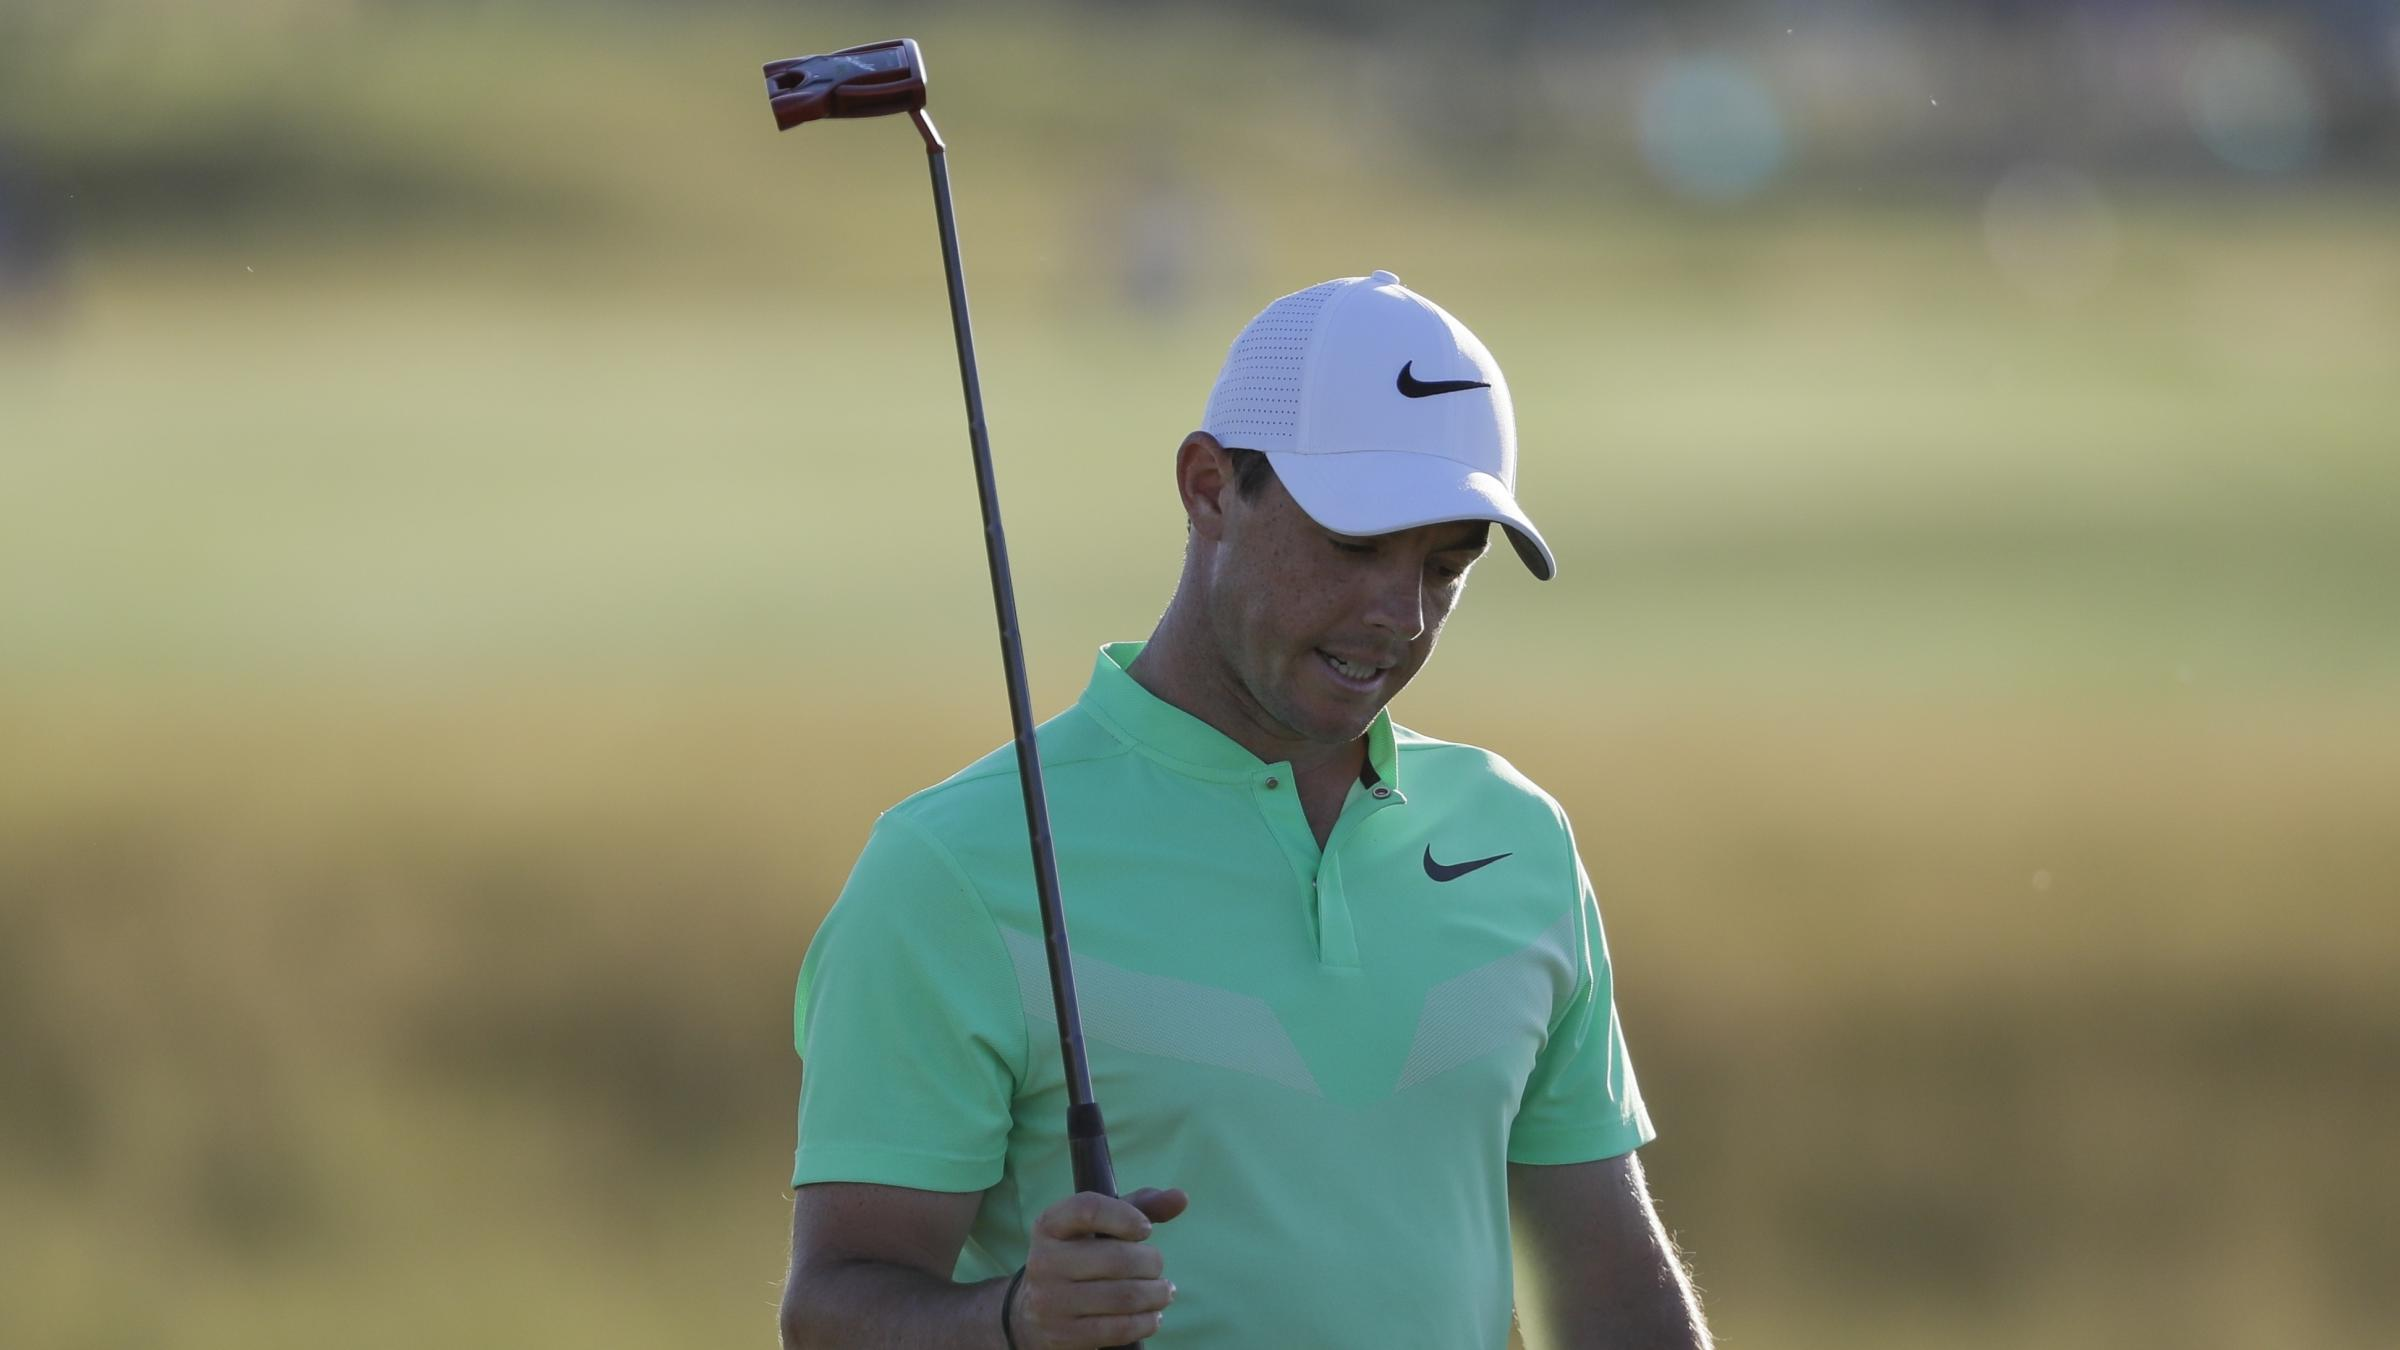 Rising winds set to provide fiendish test in US Open final round